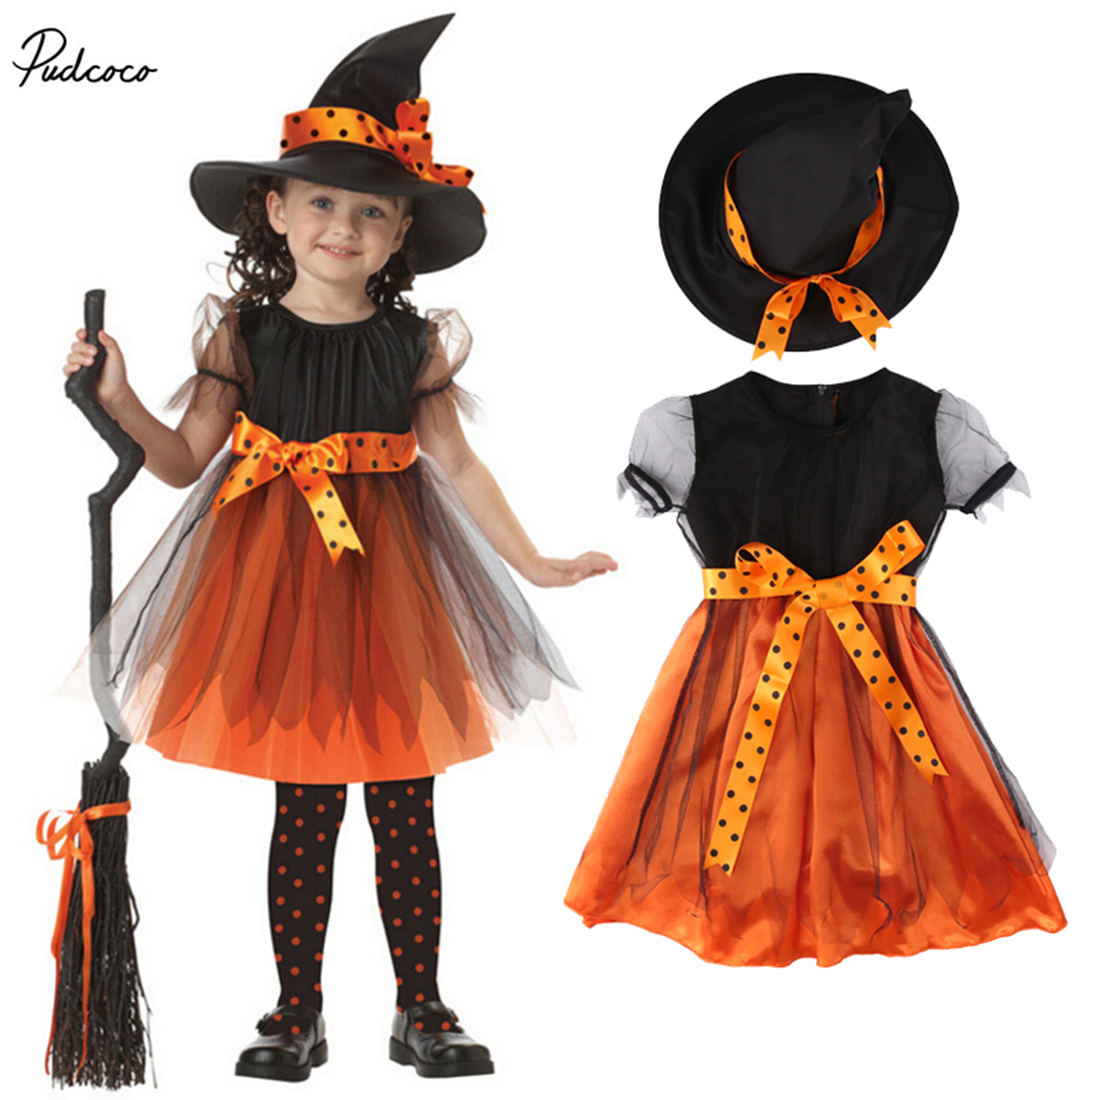 Witch Cosplay Clothing Toddler Girls Halloween Fancy Short Sleeve Dress Party Costume Outfit Patchwork Bow Tie Clothes HAT Set цены онлайн